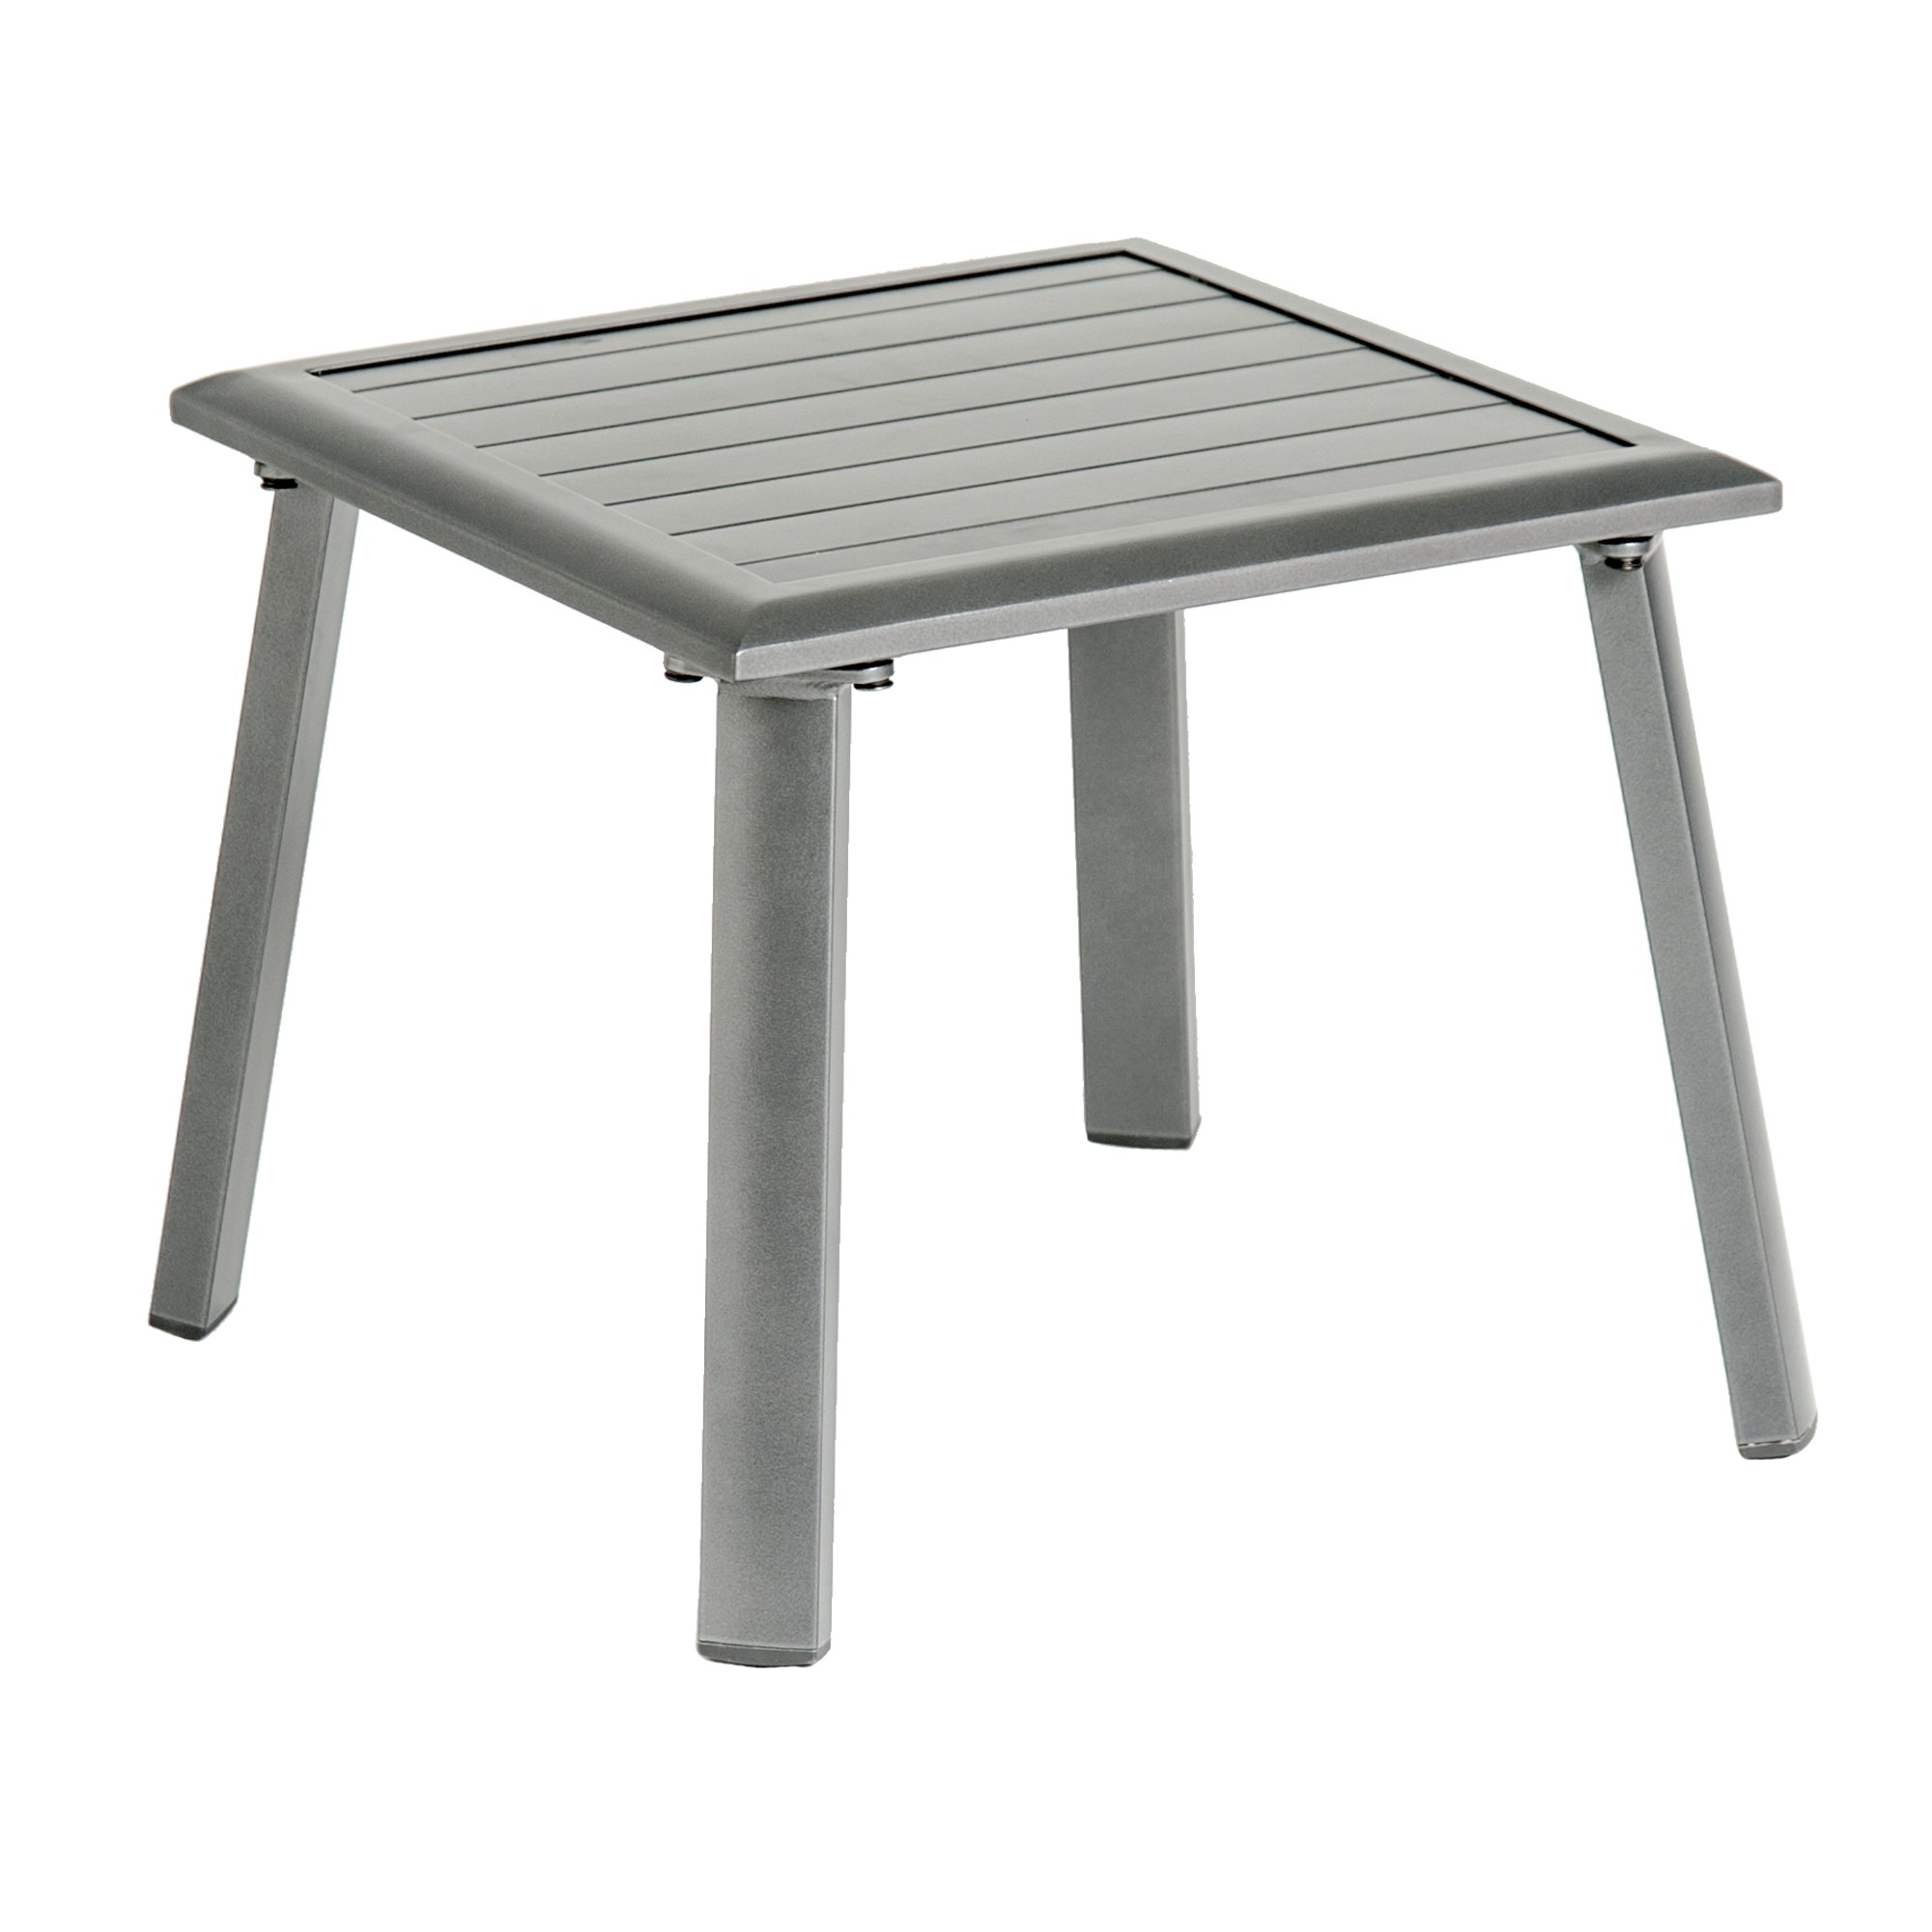 Alexander Rose Portofino Sunbed Side Table